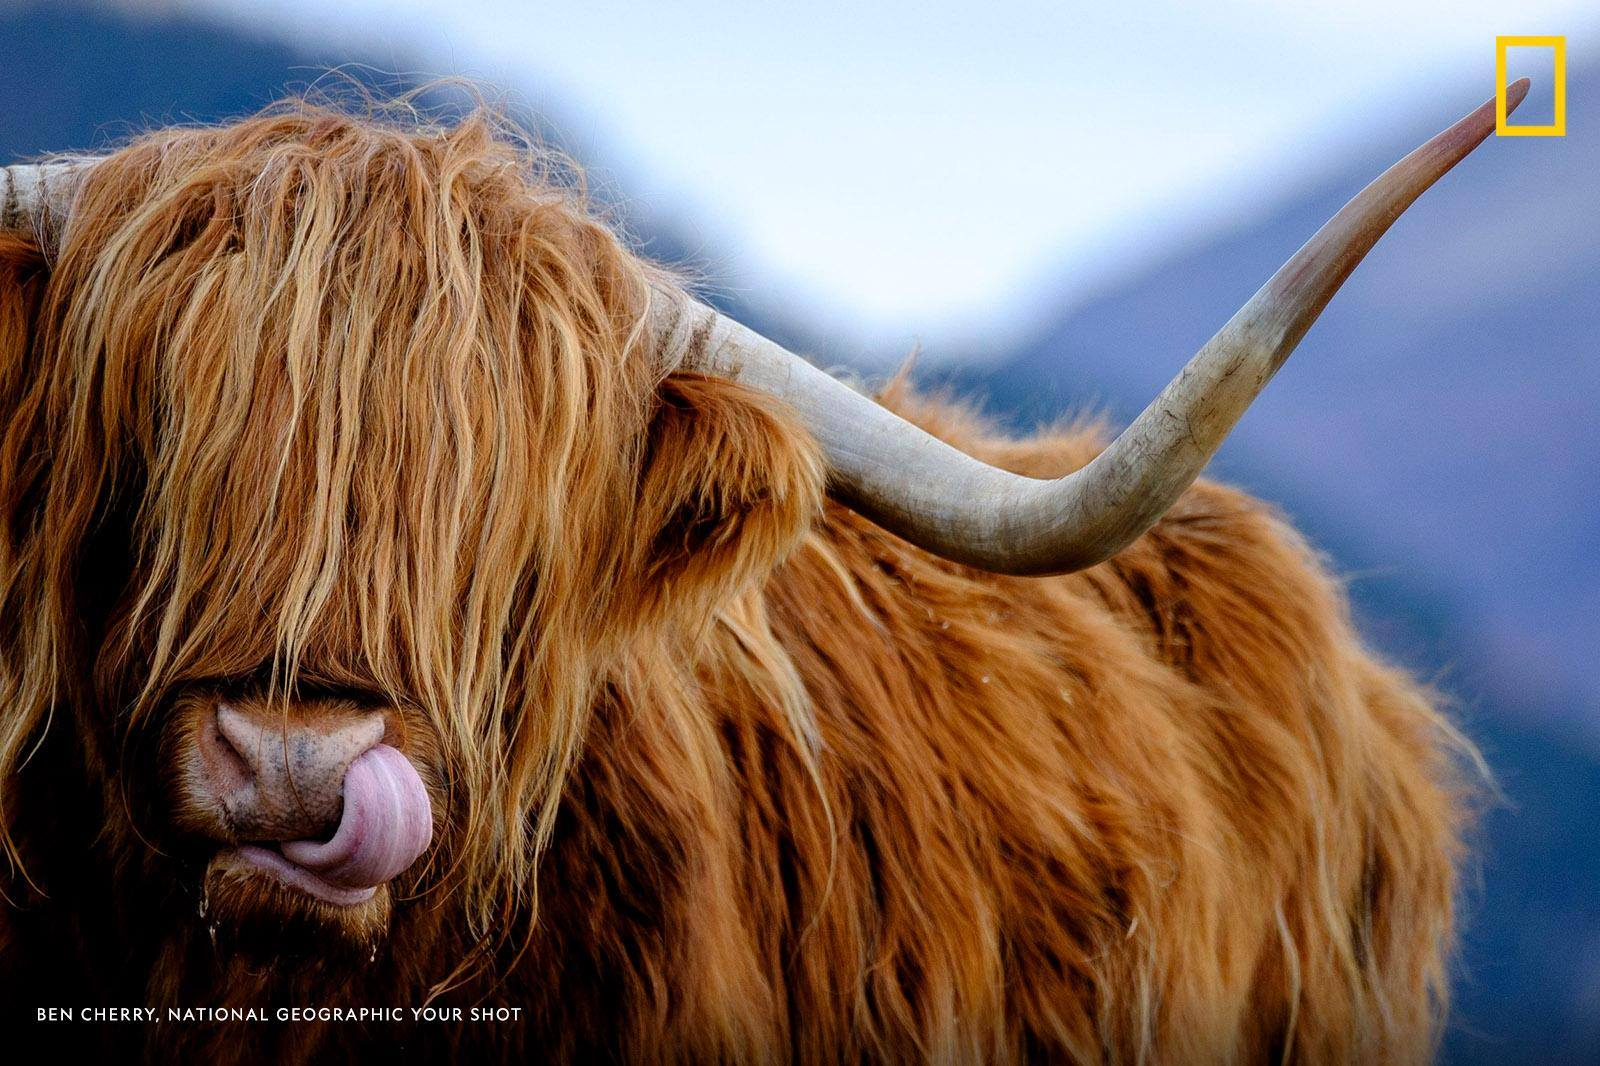 Your Shot photographer Ben Cherry captured this amusing scene as a highland cattle licks its nose on a cold morning in the Isle of Skye, Scotland.